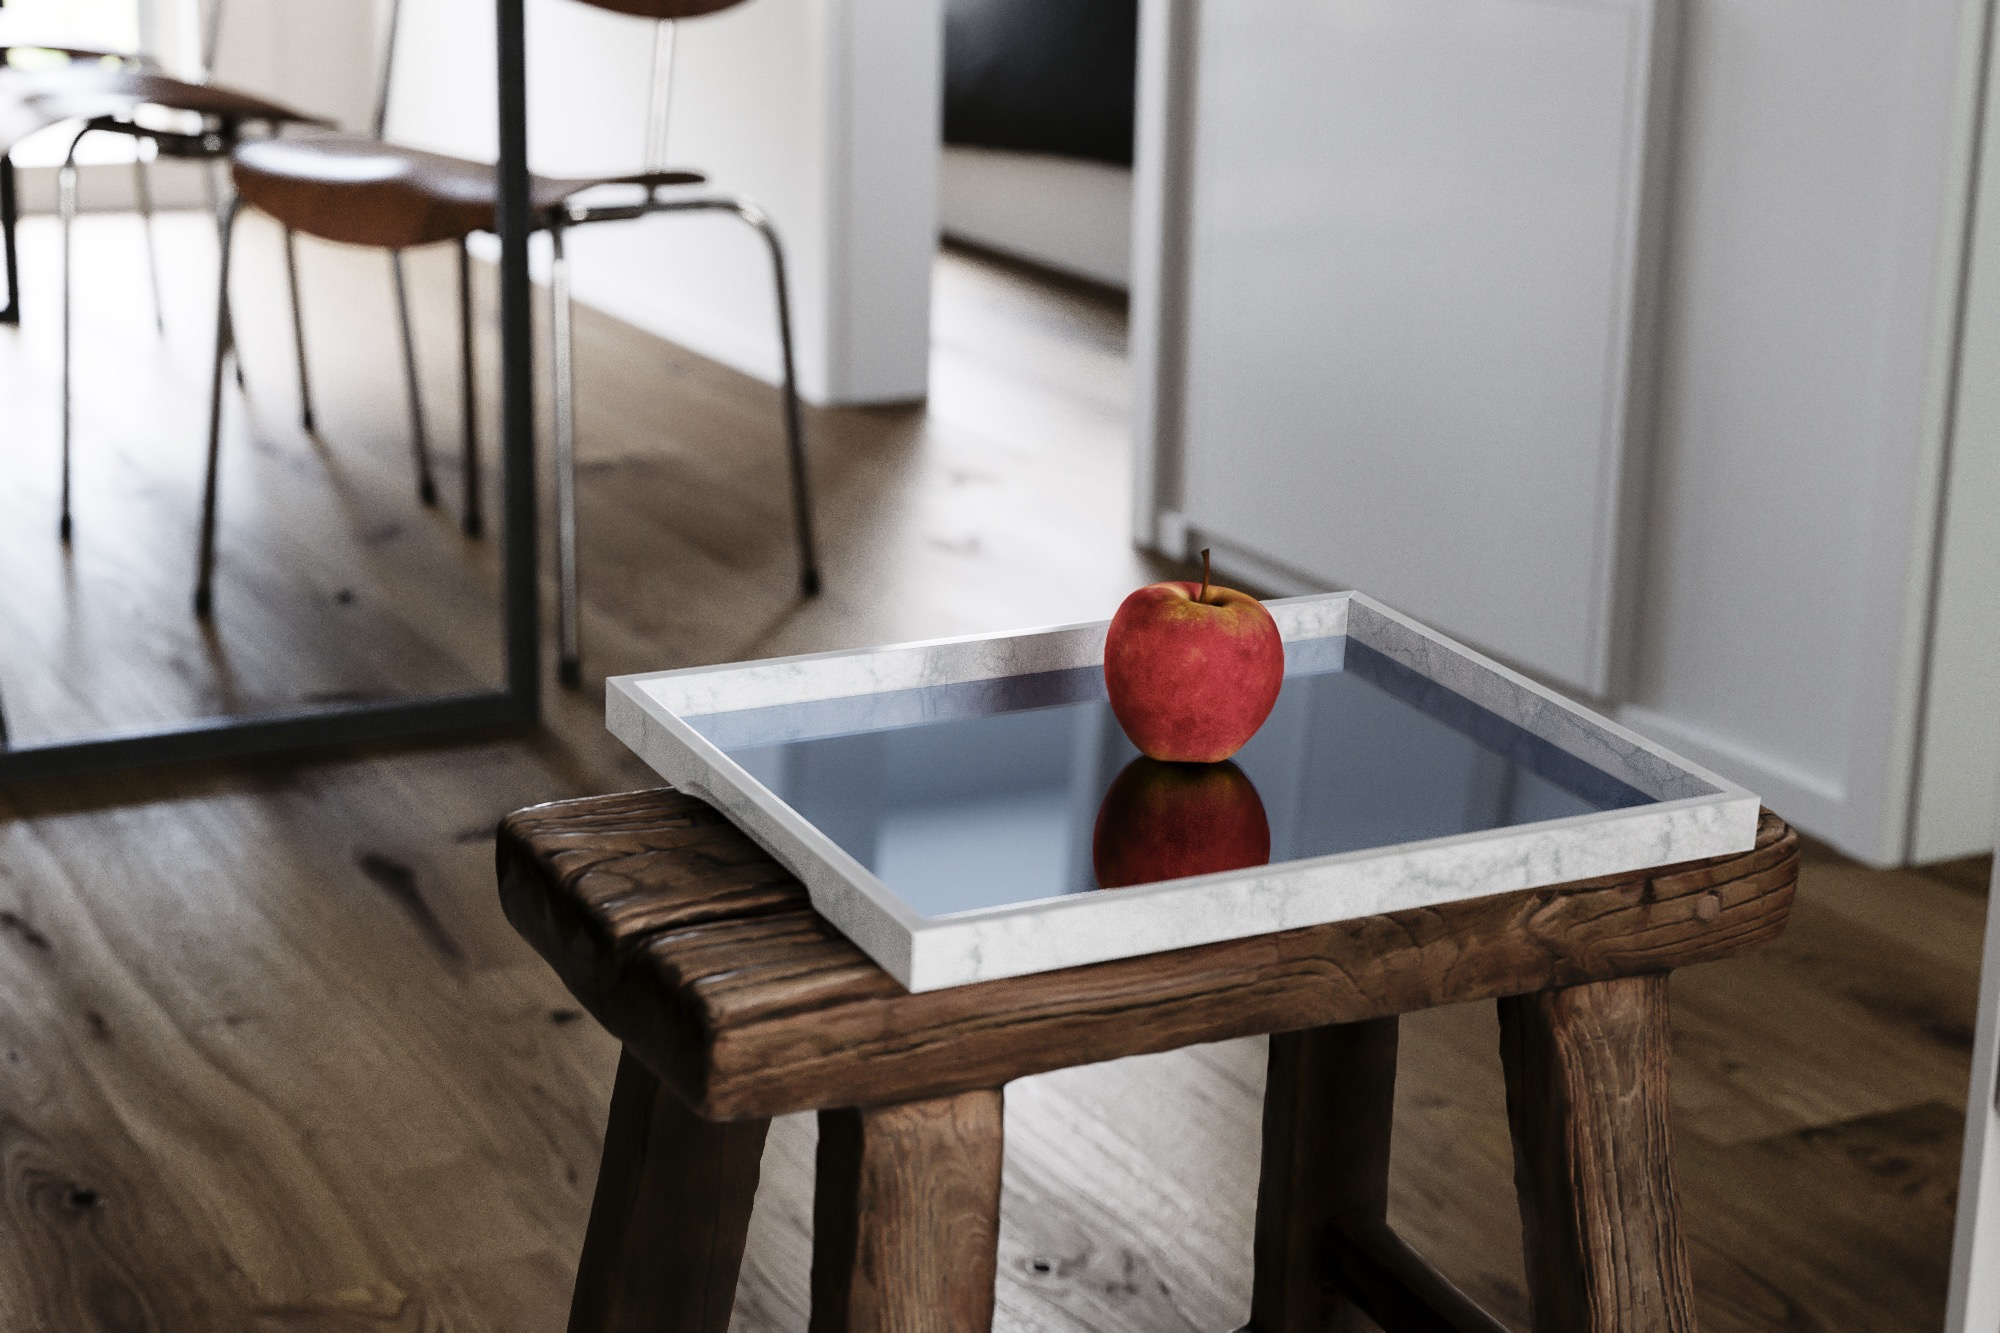 Marble Tray Photographed in Situation